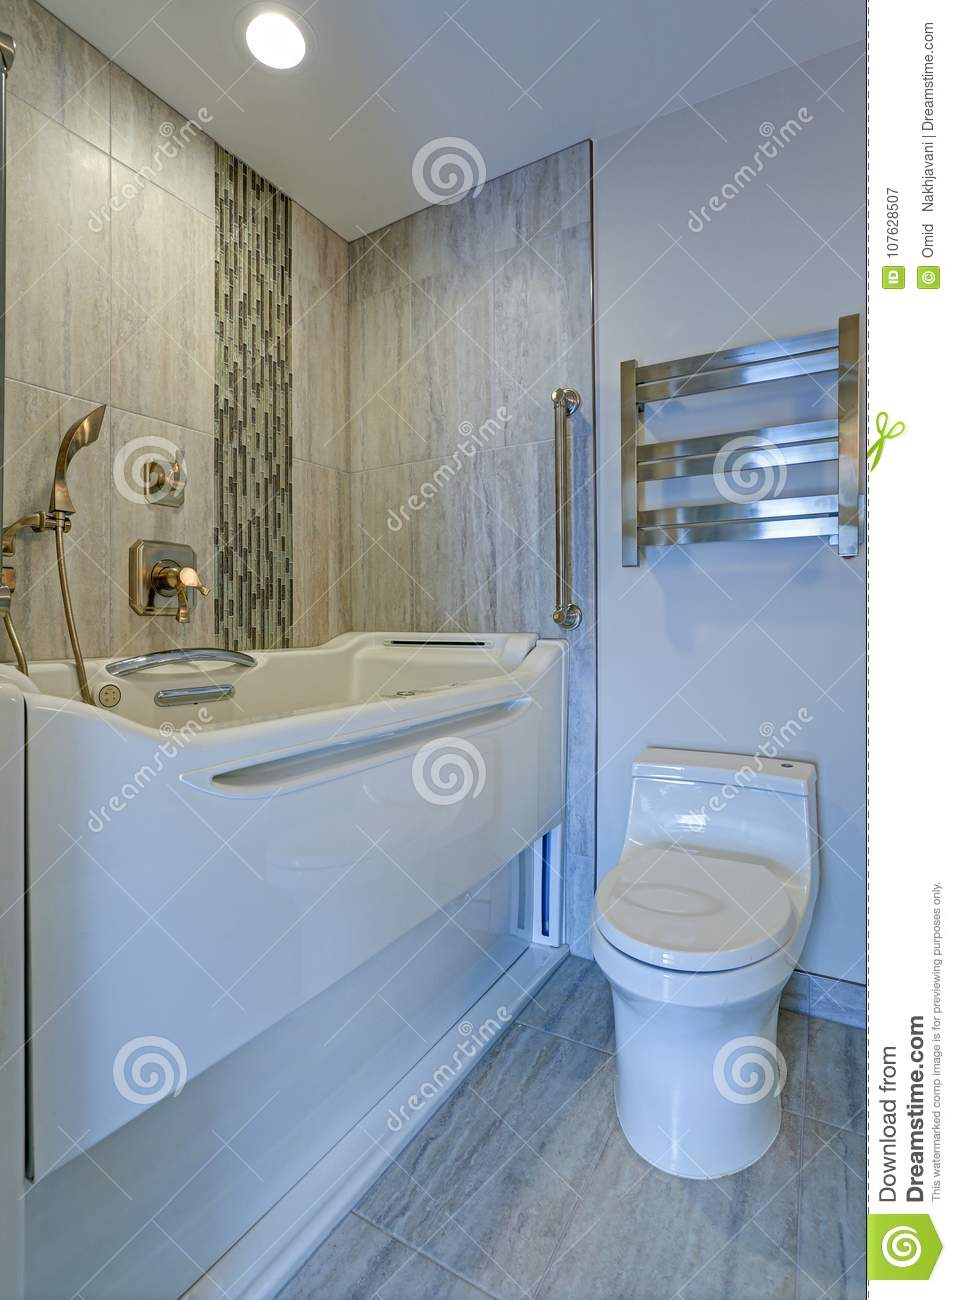 Contemporary Bathroom Design With Jacuzzi Walk-in Bathtub Stock ...